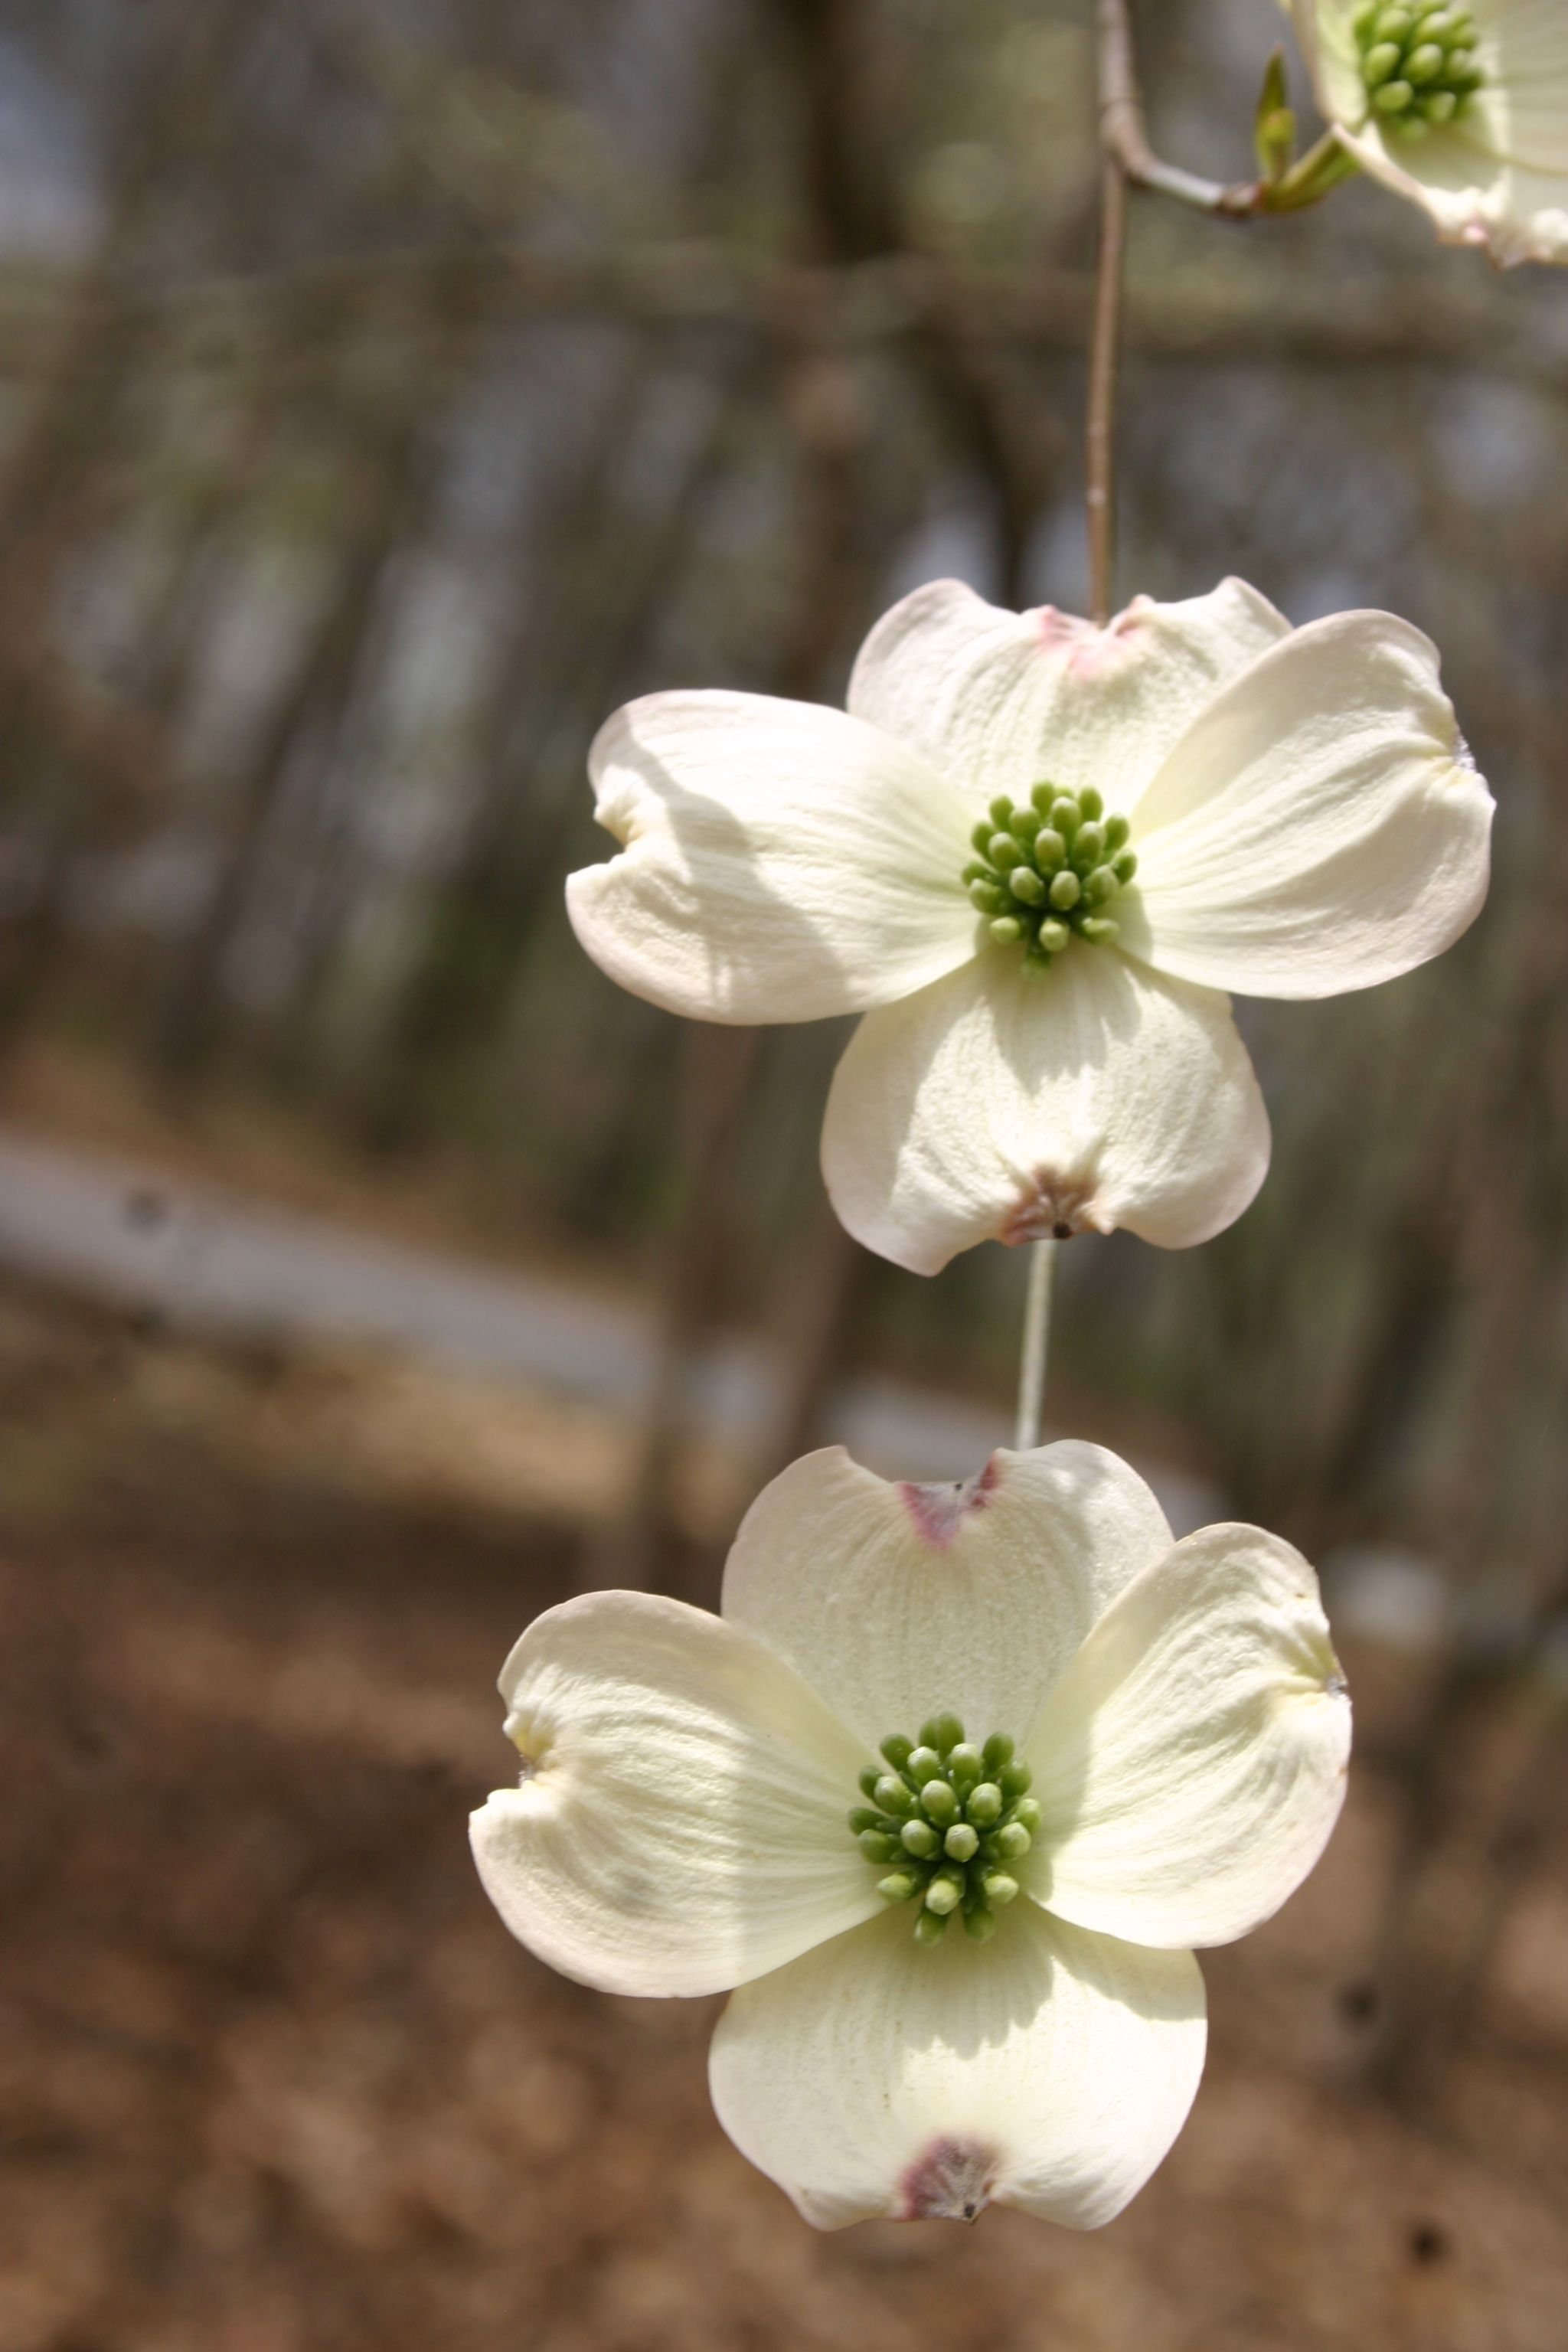 This beautiful picture of Dogwood flowers was taken by a child at the Eagle Ranch School. What is your favorite Spring bloom? :) #spring #flowers #dogwood